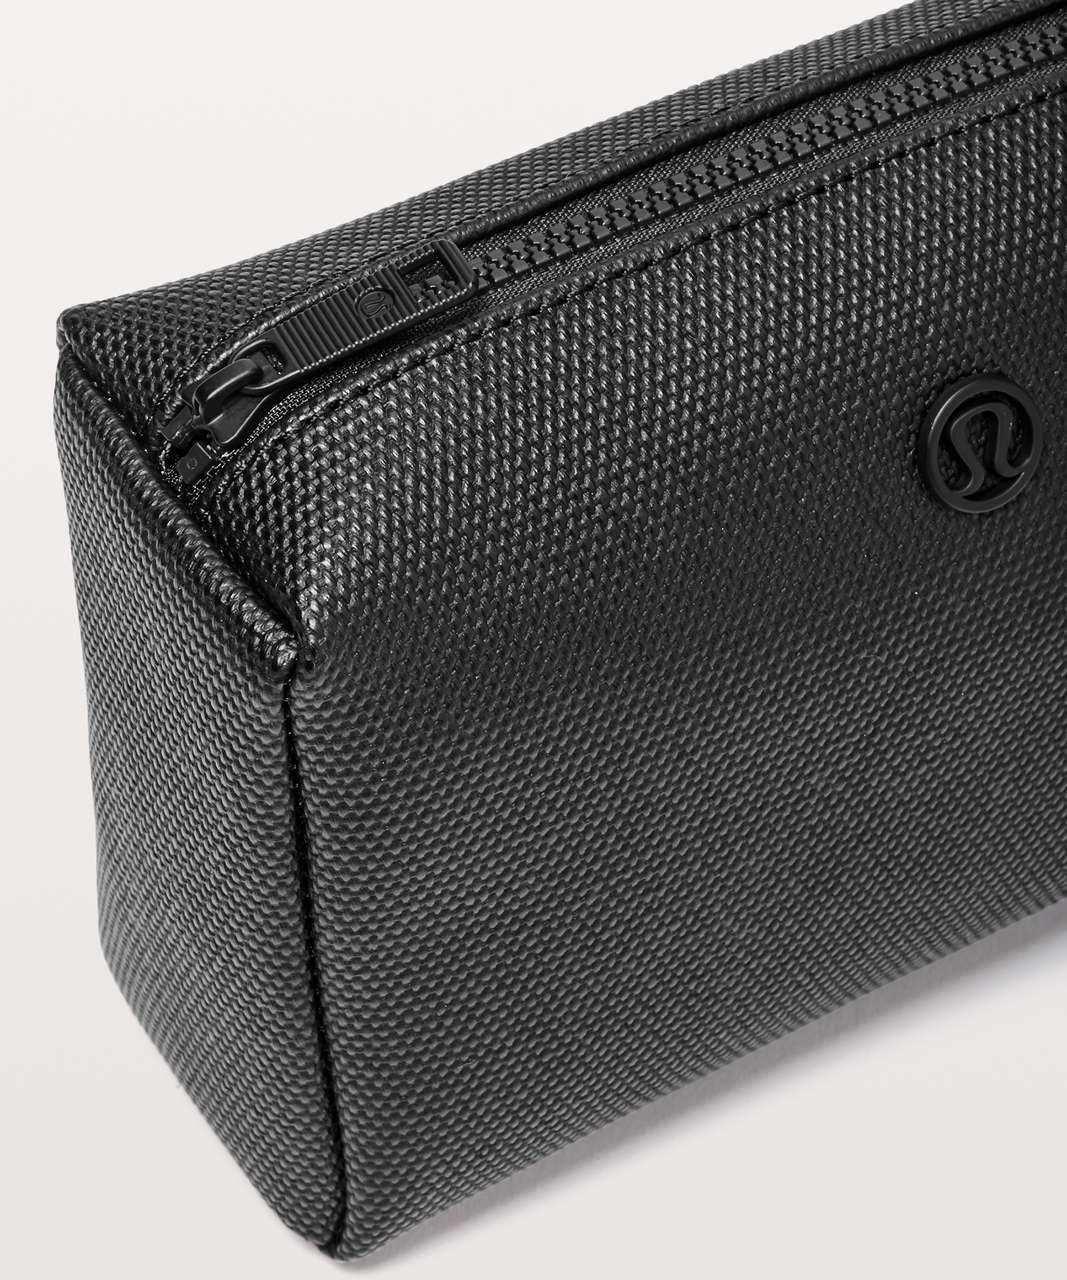 Lululemon All Your Small Things Pouch *Canvas Mini 2L - Black